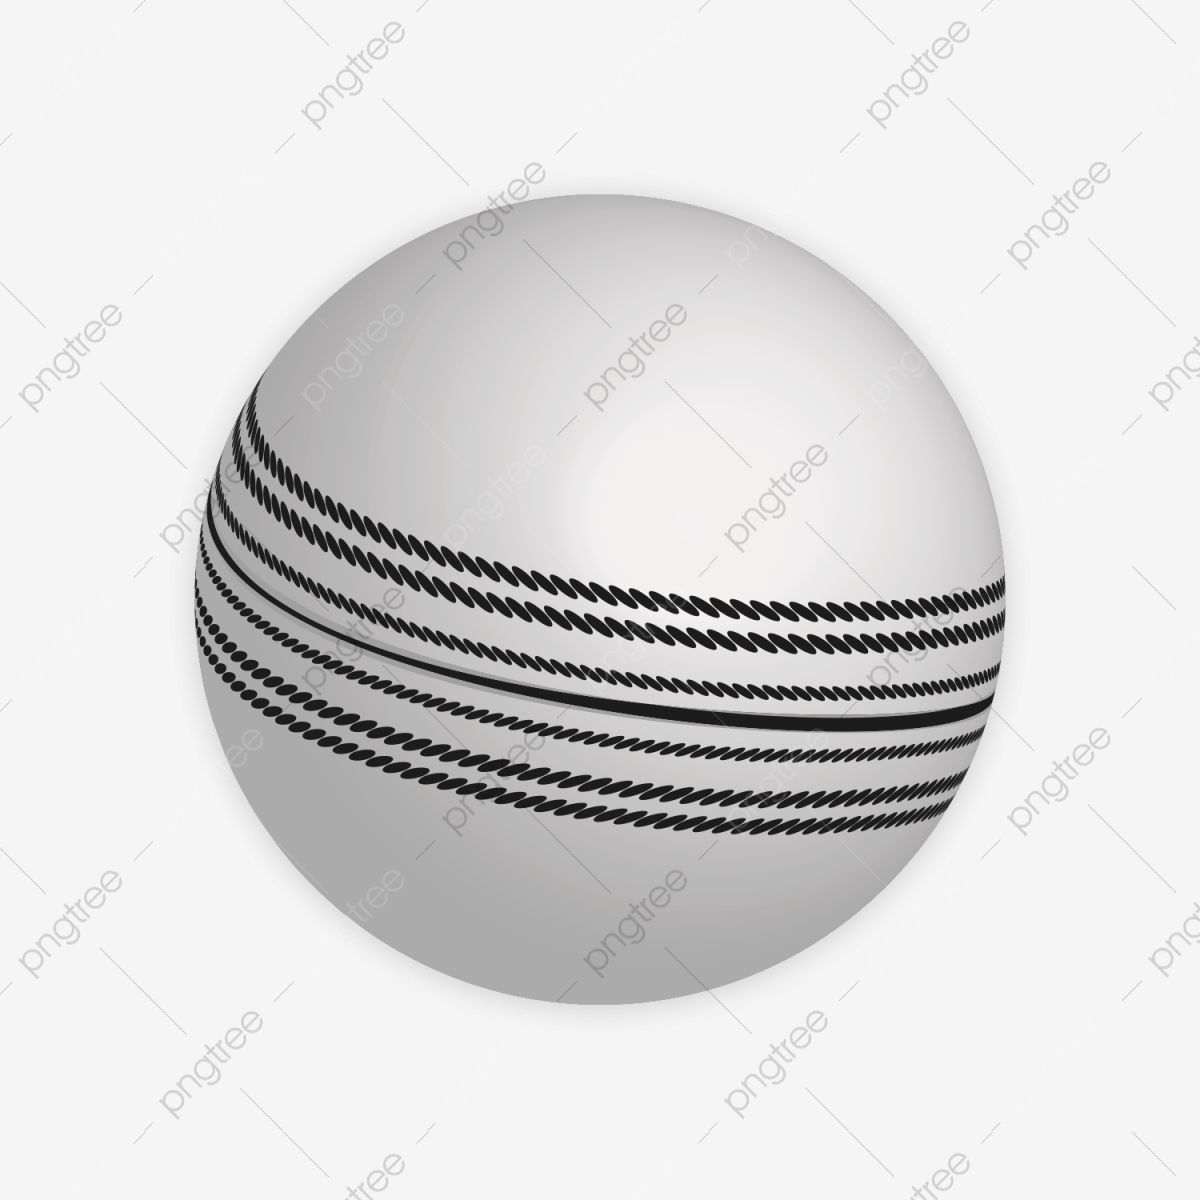 White Cricket Ball Png 3d Vector Image 3d Cricket Ball Transparent Vector Cricket Ball Cricket Ball Png Png Transparent Clipart Image And Psd File For Free D Vector Images Cricket Balls